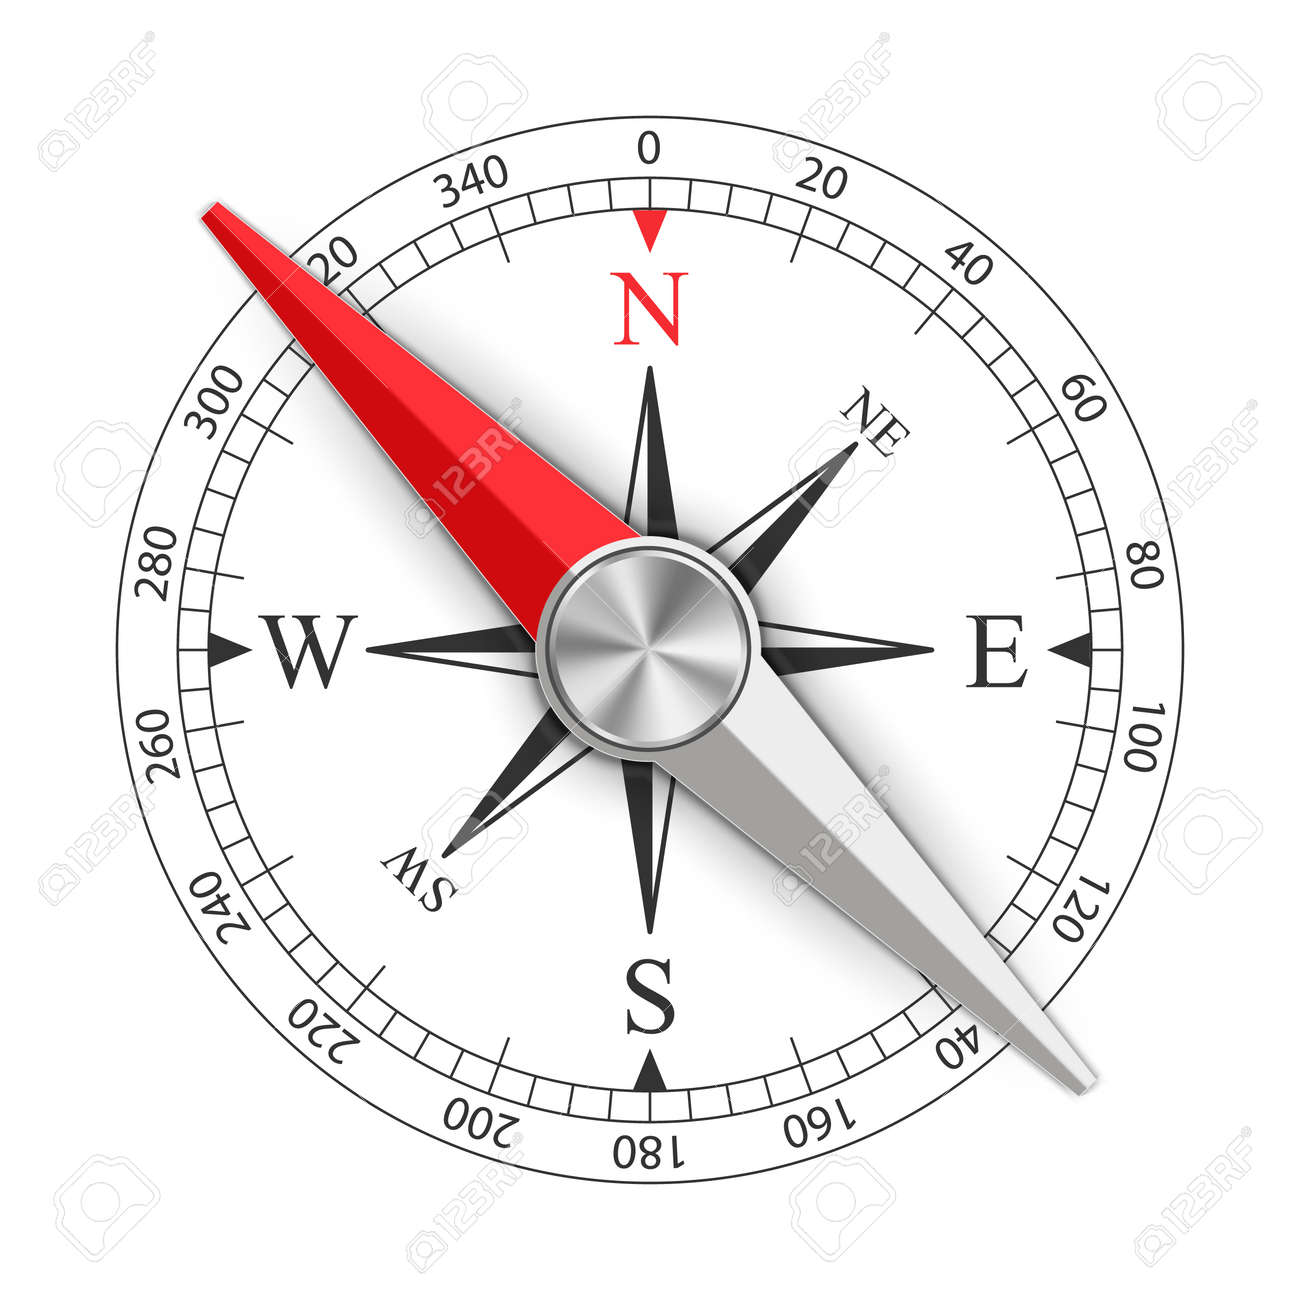 Creative vector illustration of wind rose magnetic compass isolated on transparent background. Art design for global travel, tourism, exploration. Concept graphic element for navigation, orientation. - 103105237